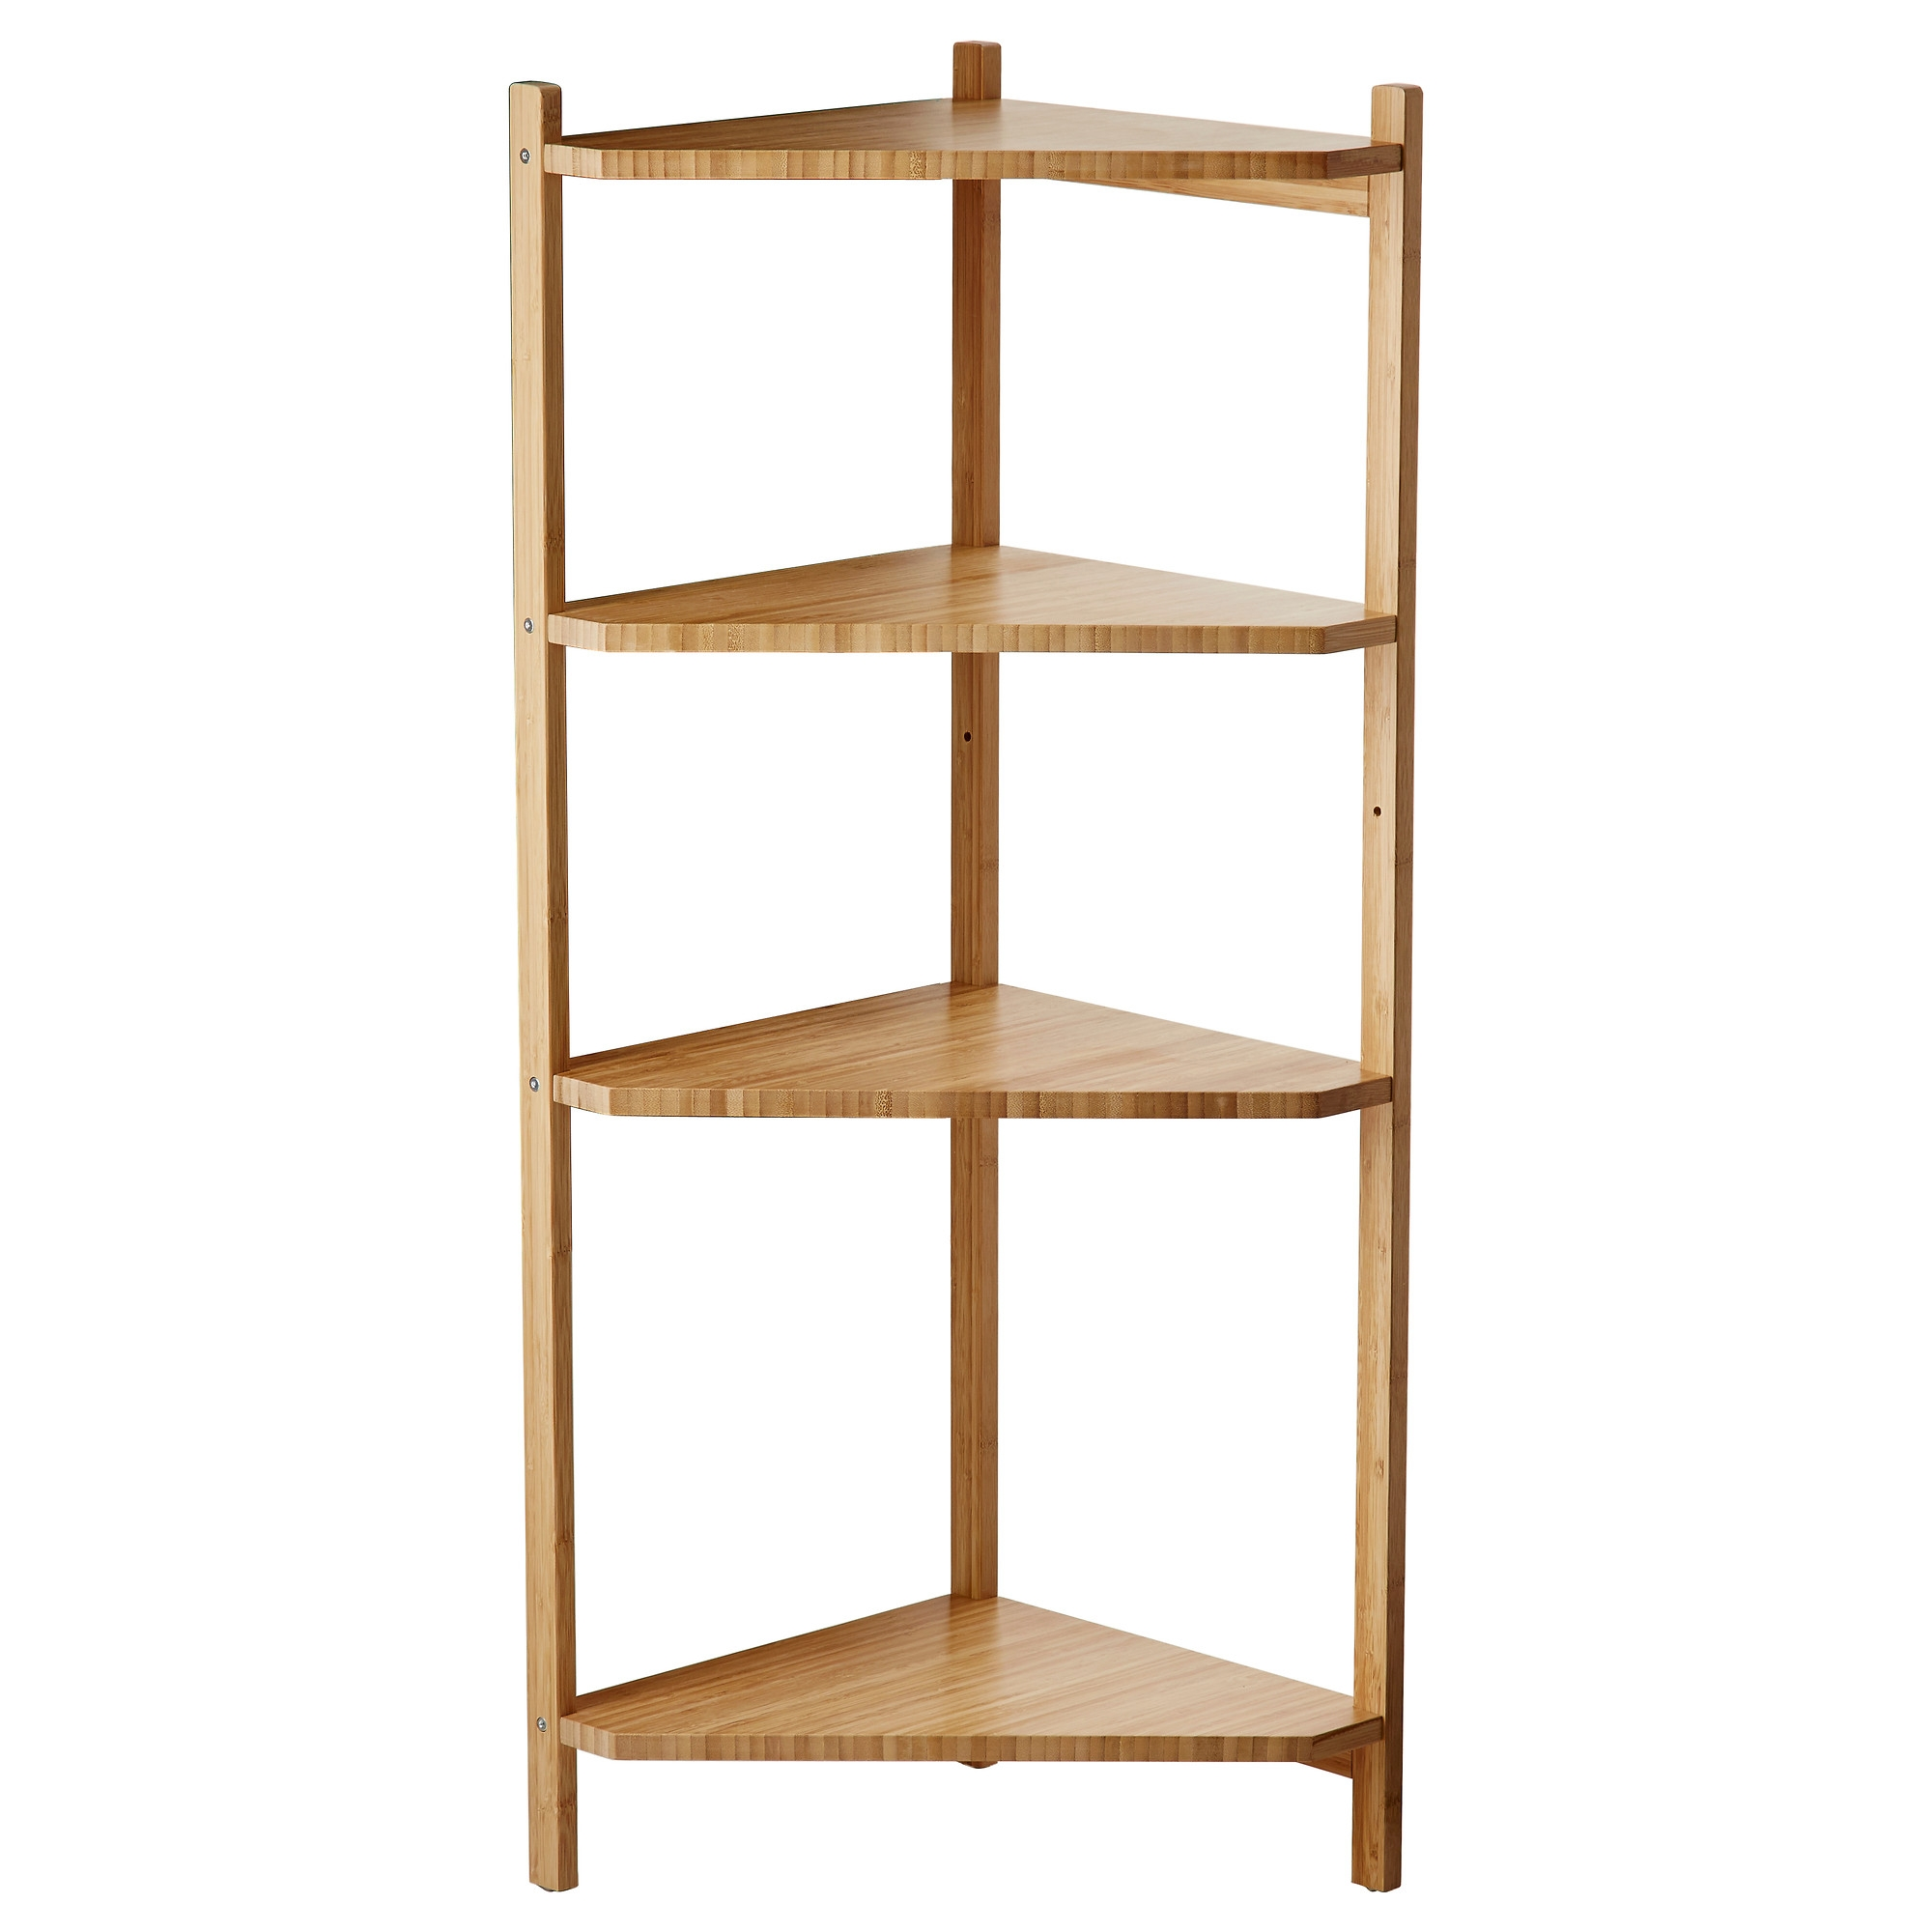 Rgrund Corner Shelf Unit Ikea Pertaining To Corner Shelf (Image 12 of 15)